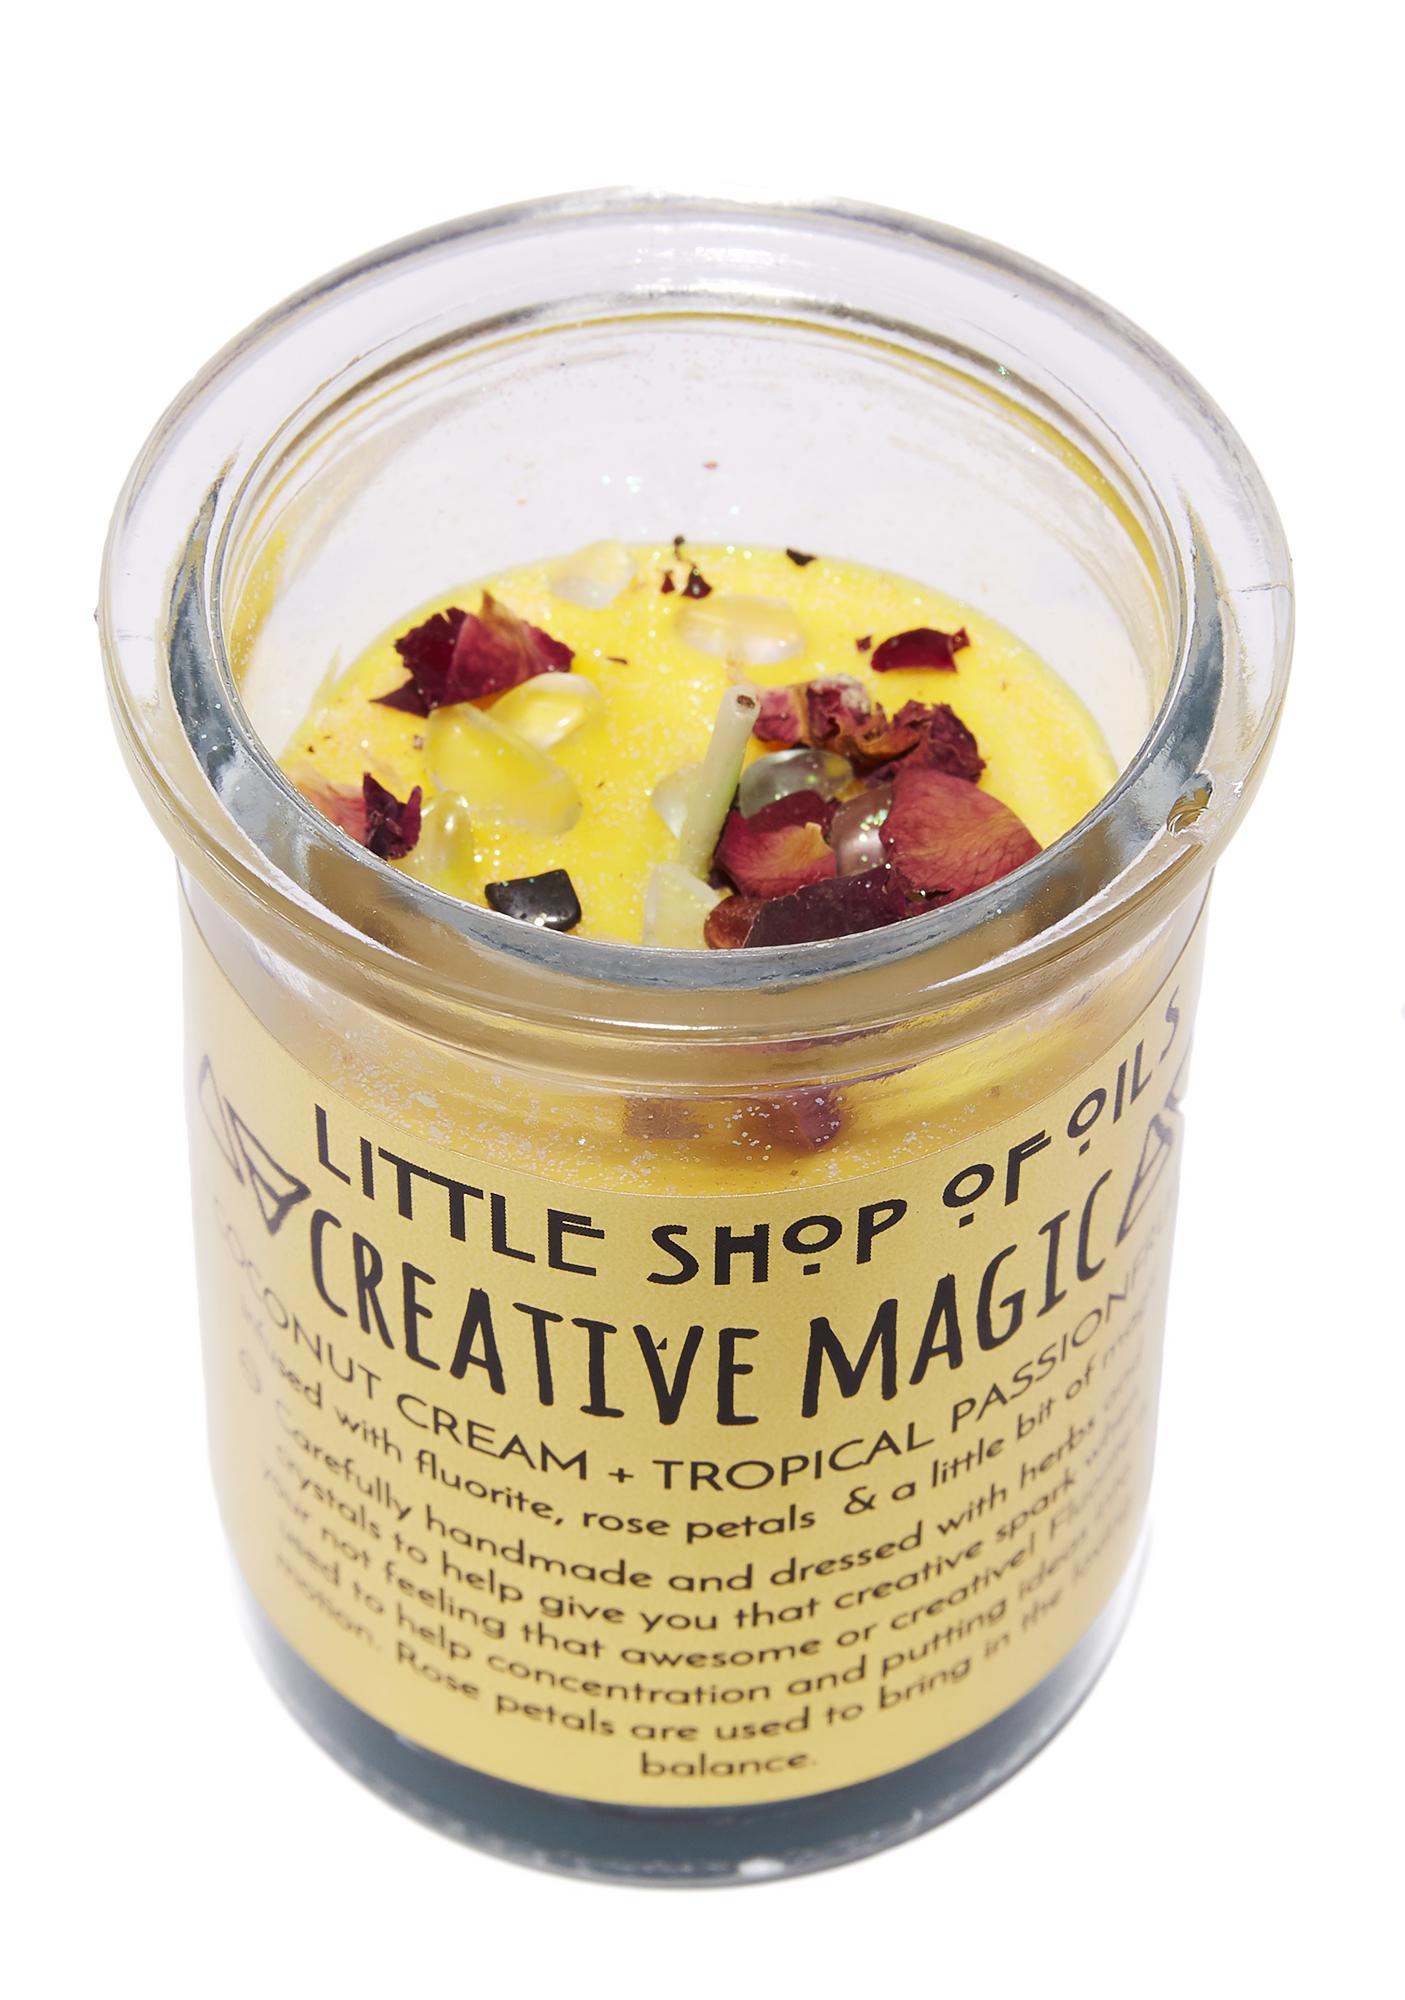 Little Shop of Oils Creative Magic Ritual Candle